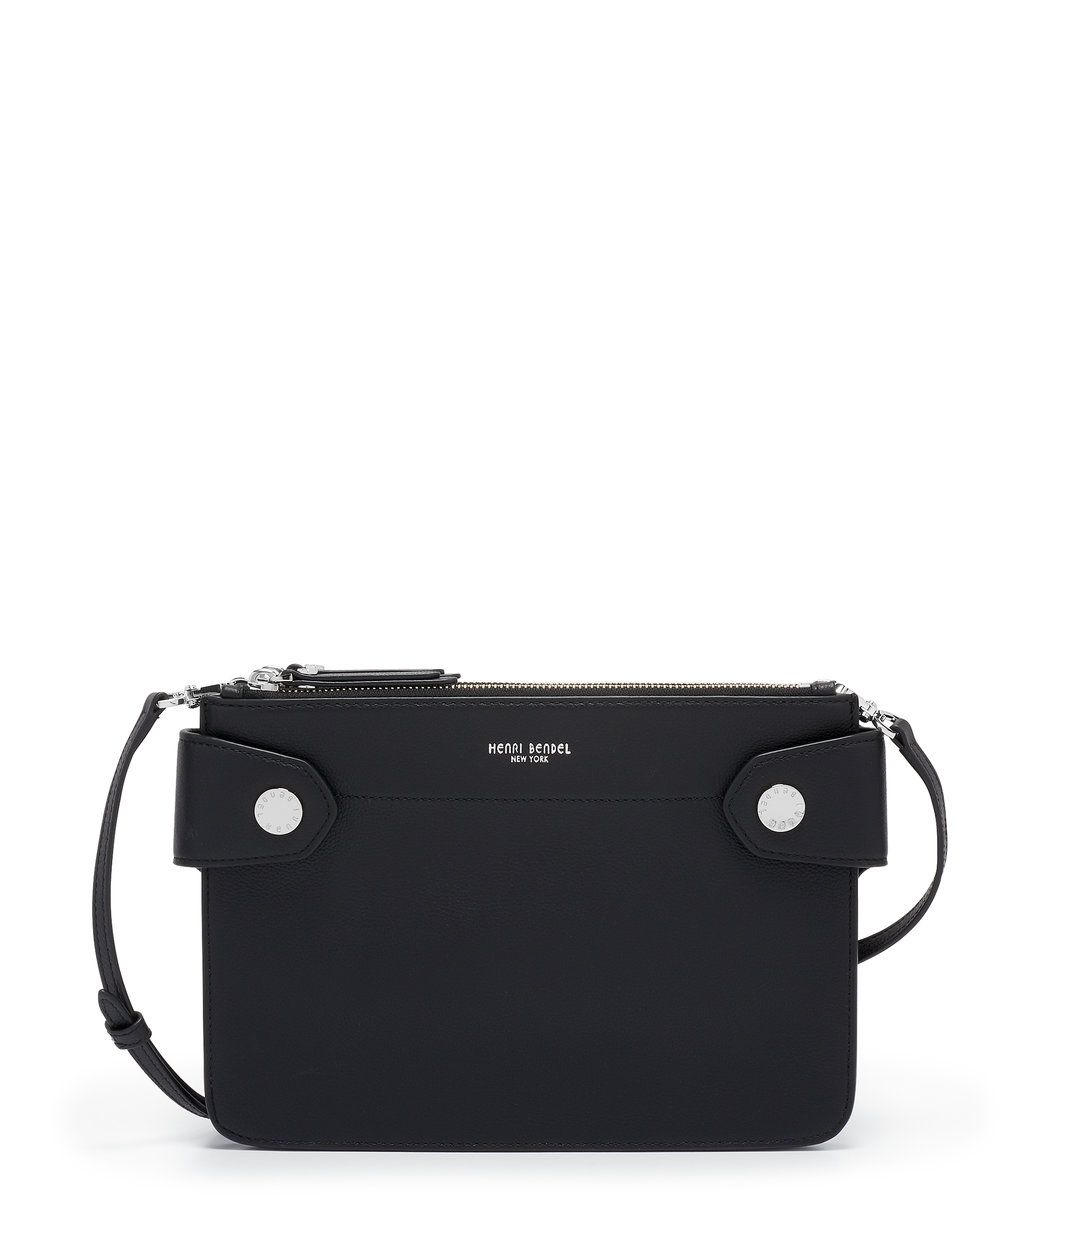 5eb7ede138c4 The Divine Crossbody by Henri Bendel is a demure leather crossbody bag that  will complement any look.